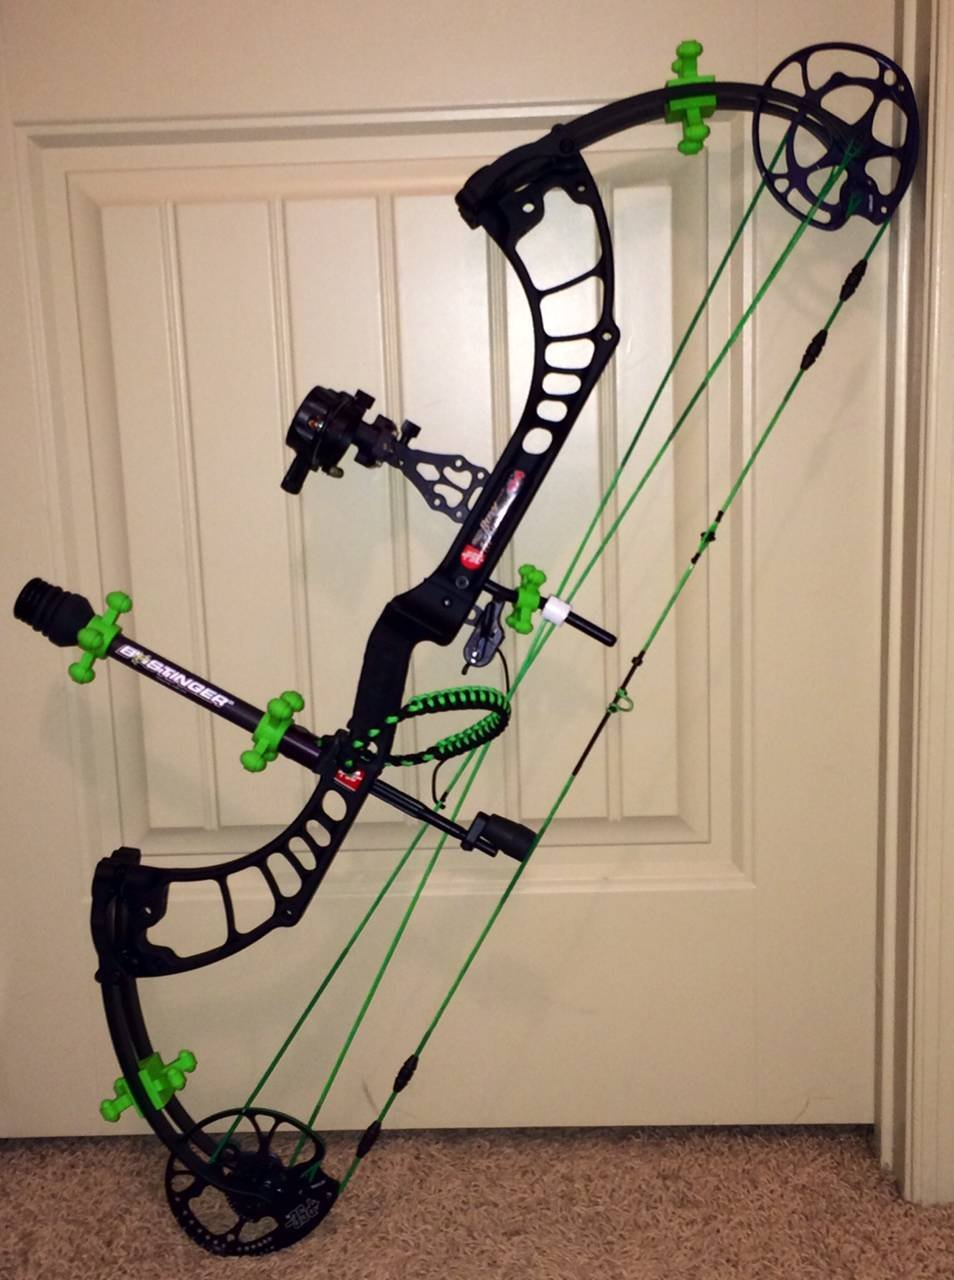 2015 Pse Bow Madness 34 Review Billedgalleri - whitman gelo